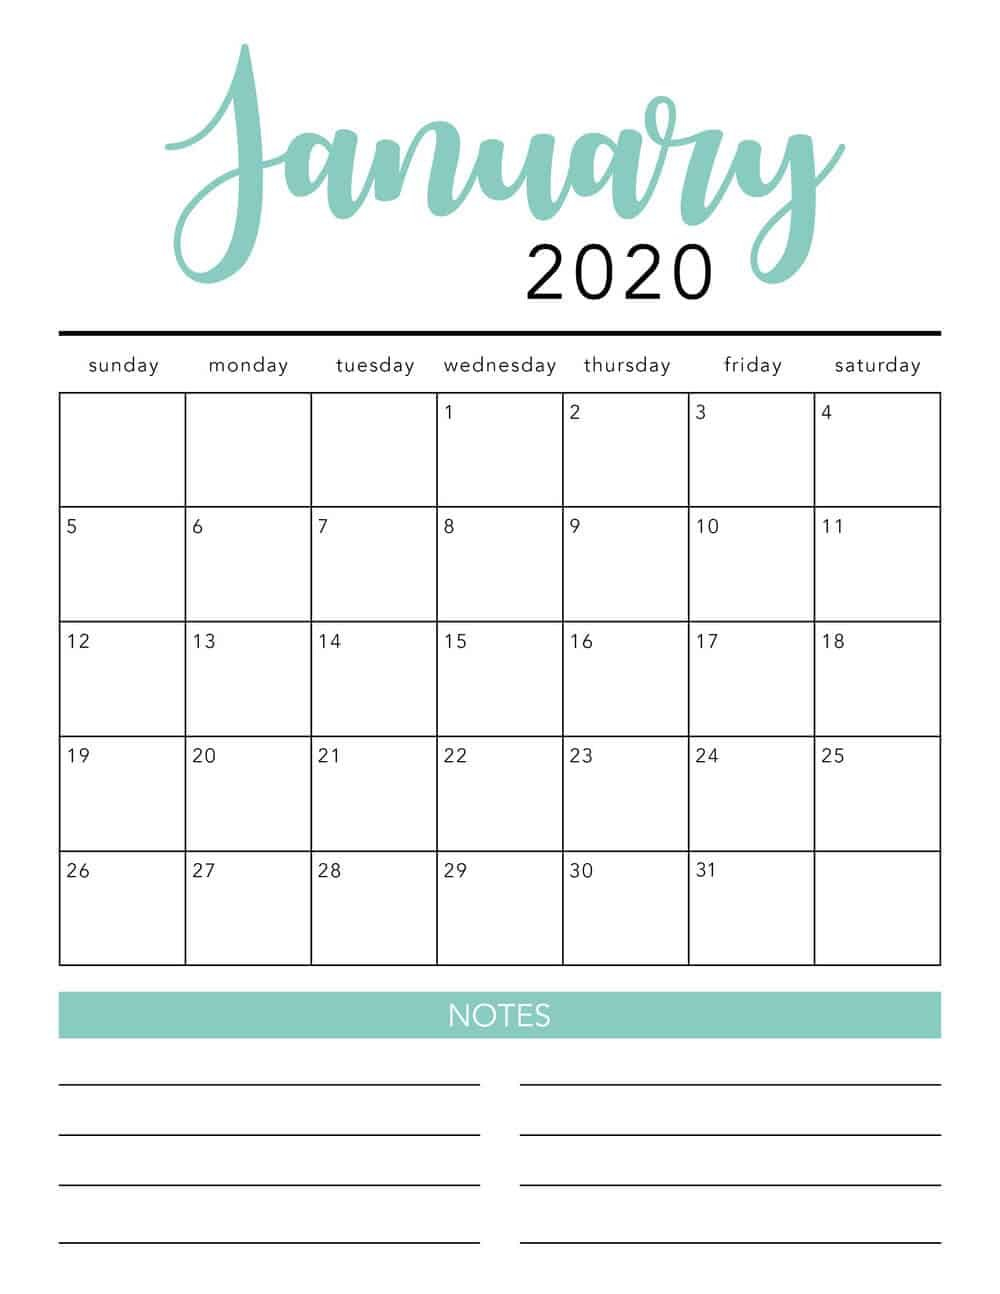 Free 2020 Printable Calendar Template (2 Colors!) – I Free Calendars That I Can Edit And Print